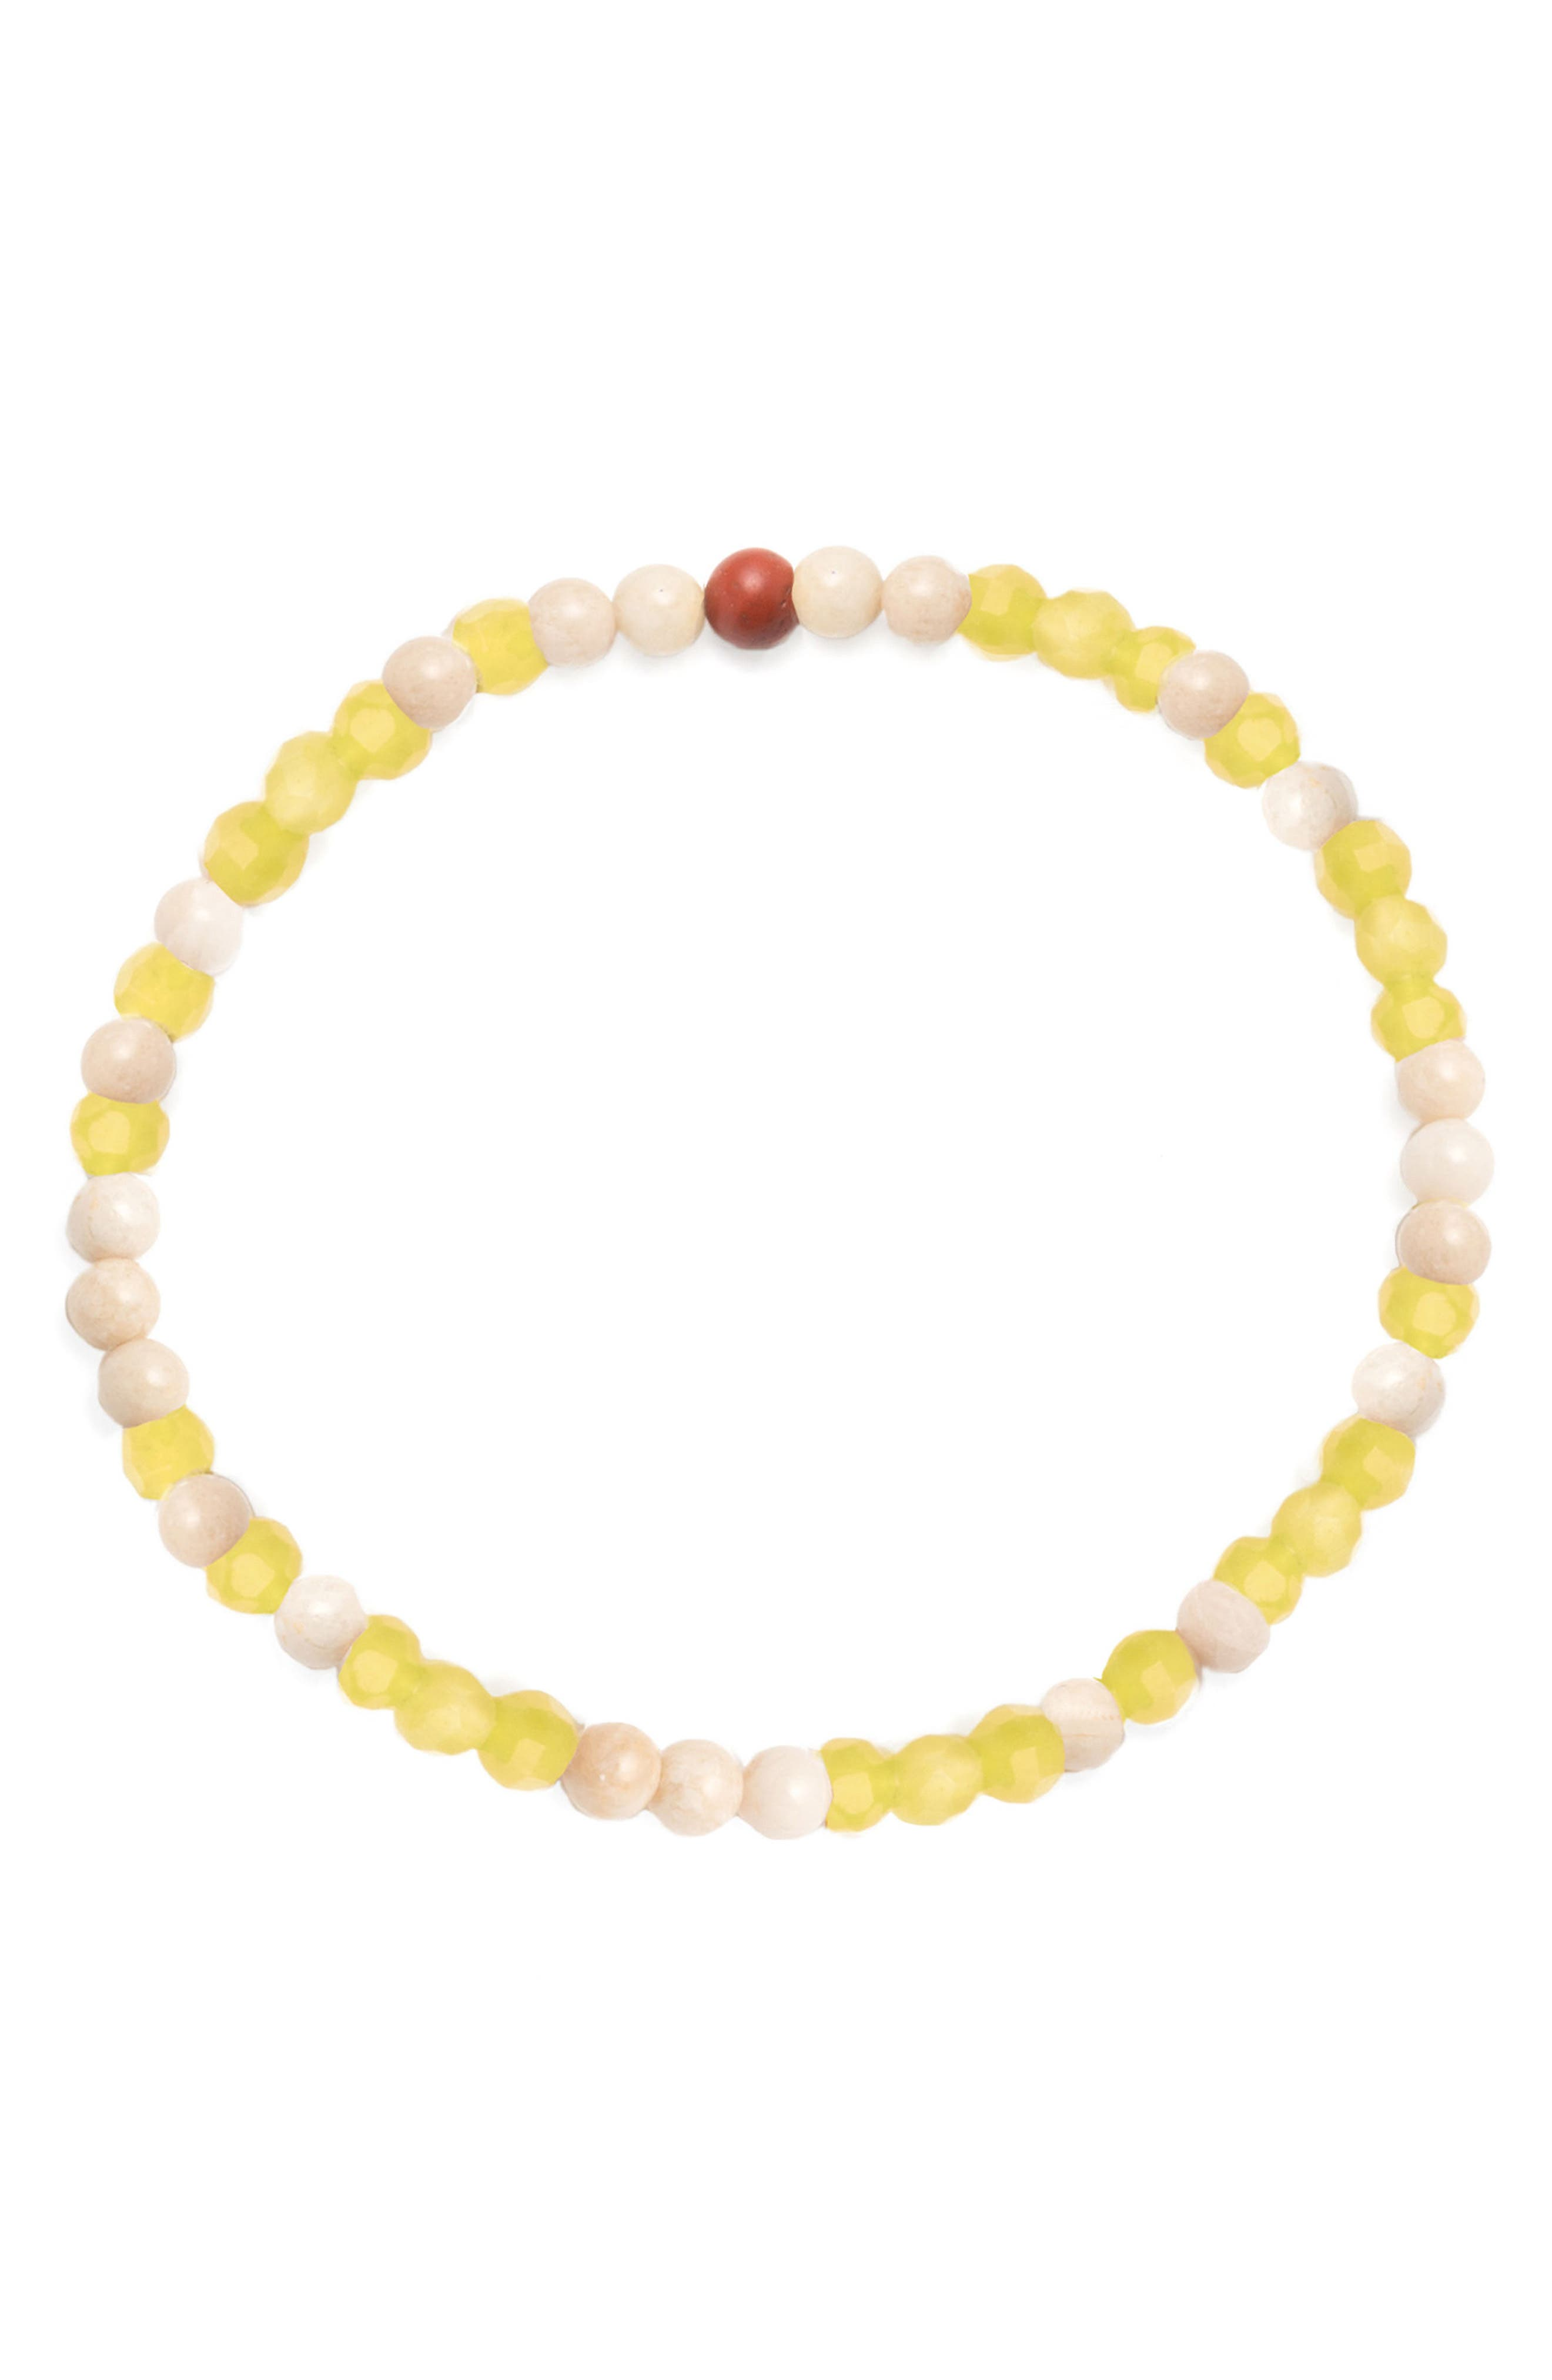 Luck Morse Bracelet,                             Main thumbnail 1, color,                             Yellow / White